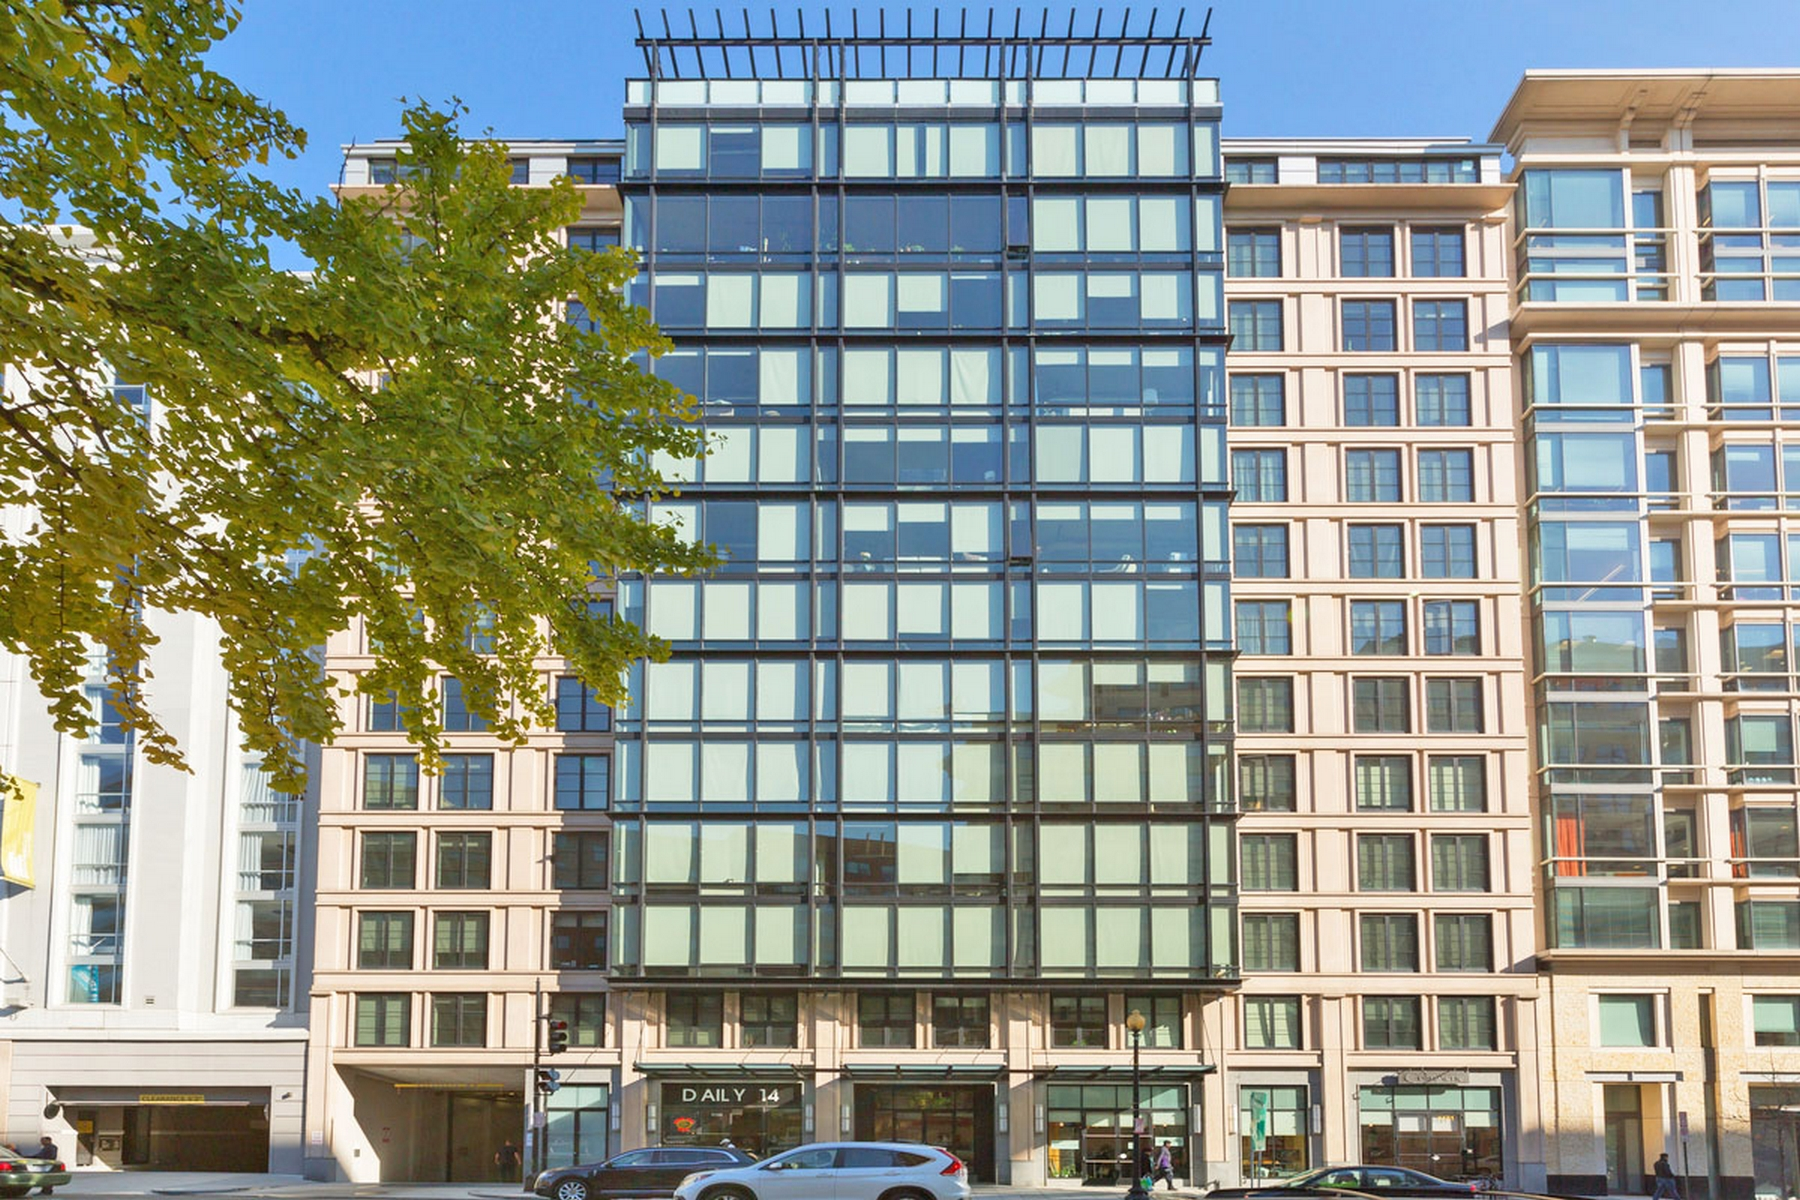 Condominium for Sale at Central - Logan Circle 1133 14th Street NW #1010 Washington, District Of Columbia 20005 United States